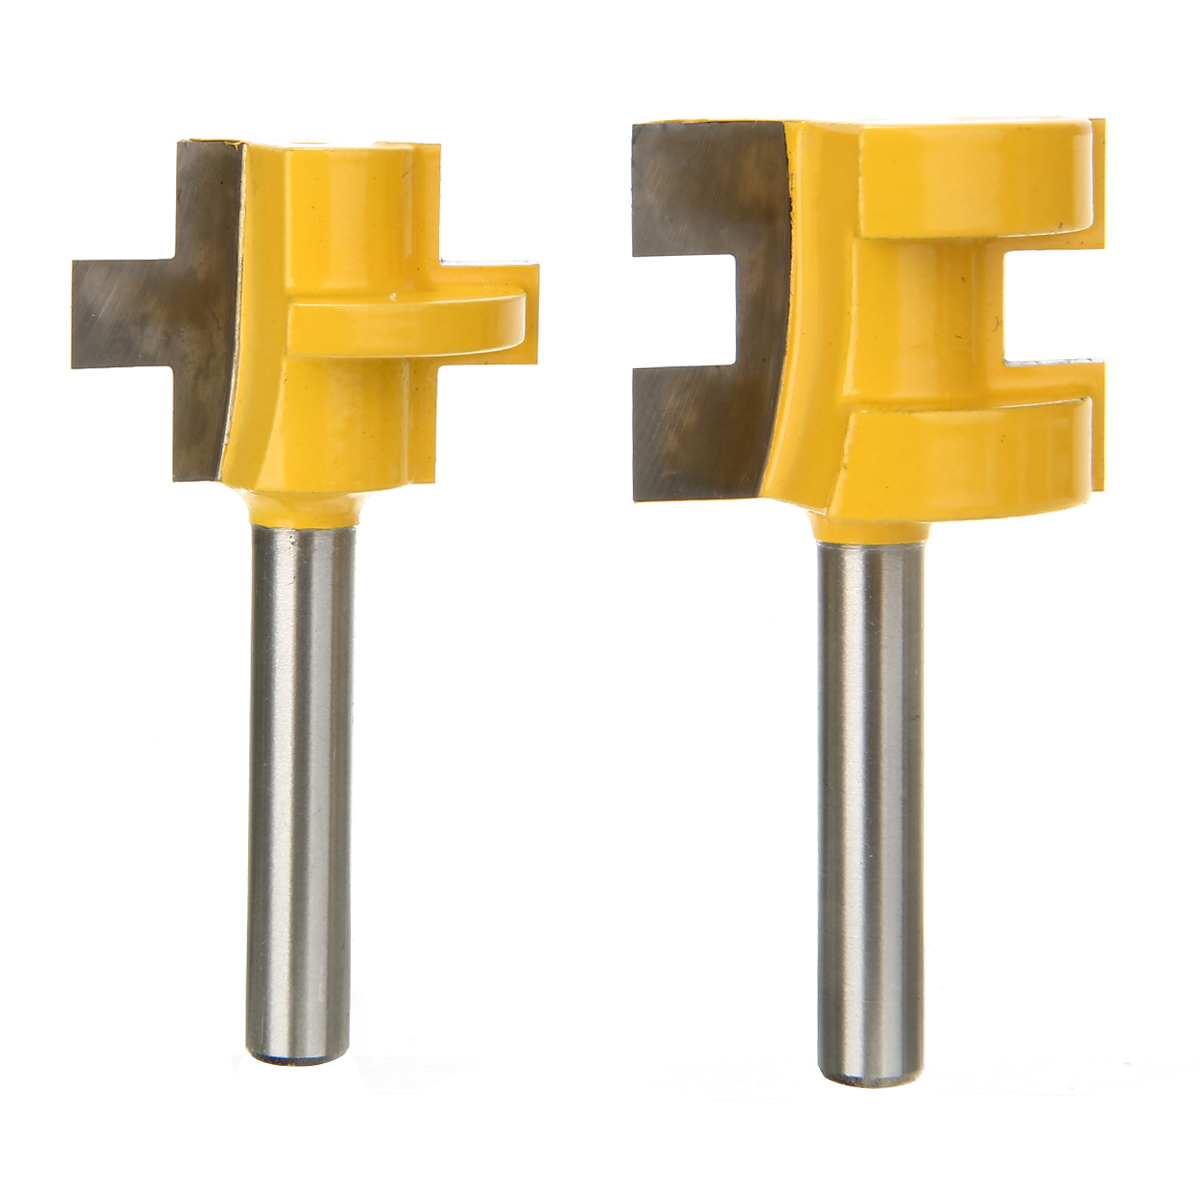 """2Pcs Woodworking Chisel Cutter 2 Bit Tongue And Groove Router Bit 1/4"""" Shank Milling Cutter  Woodworking Chisel Cutter"""